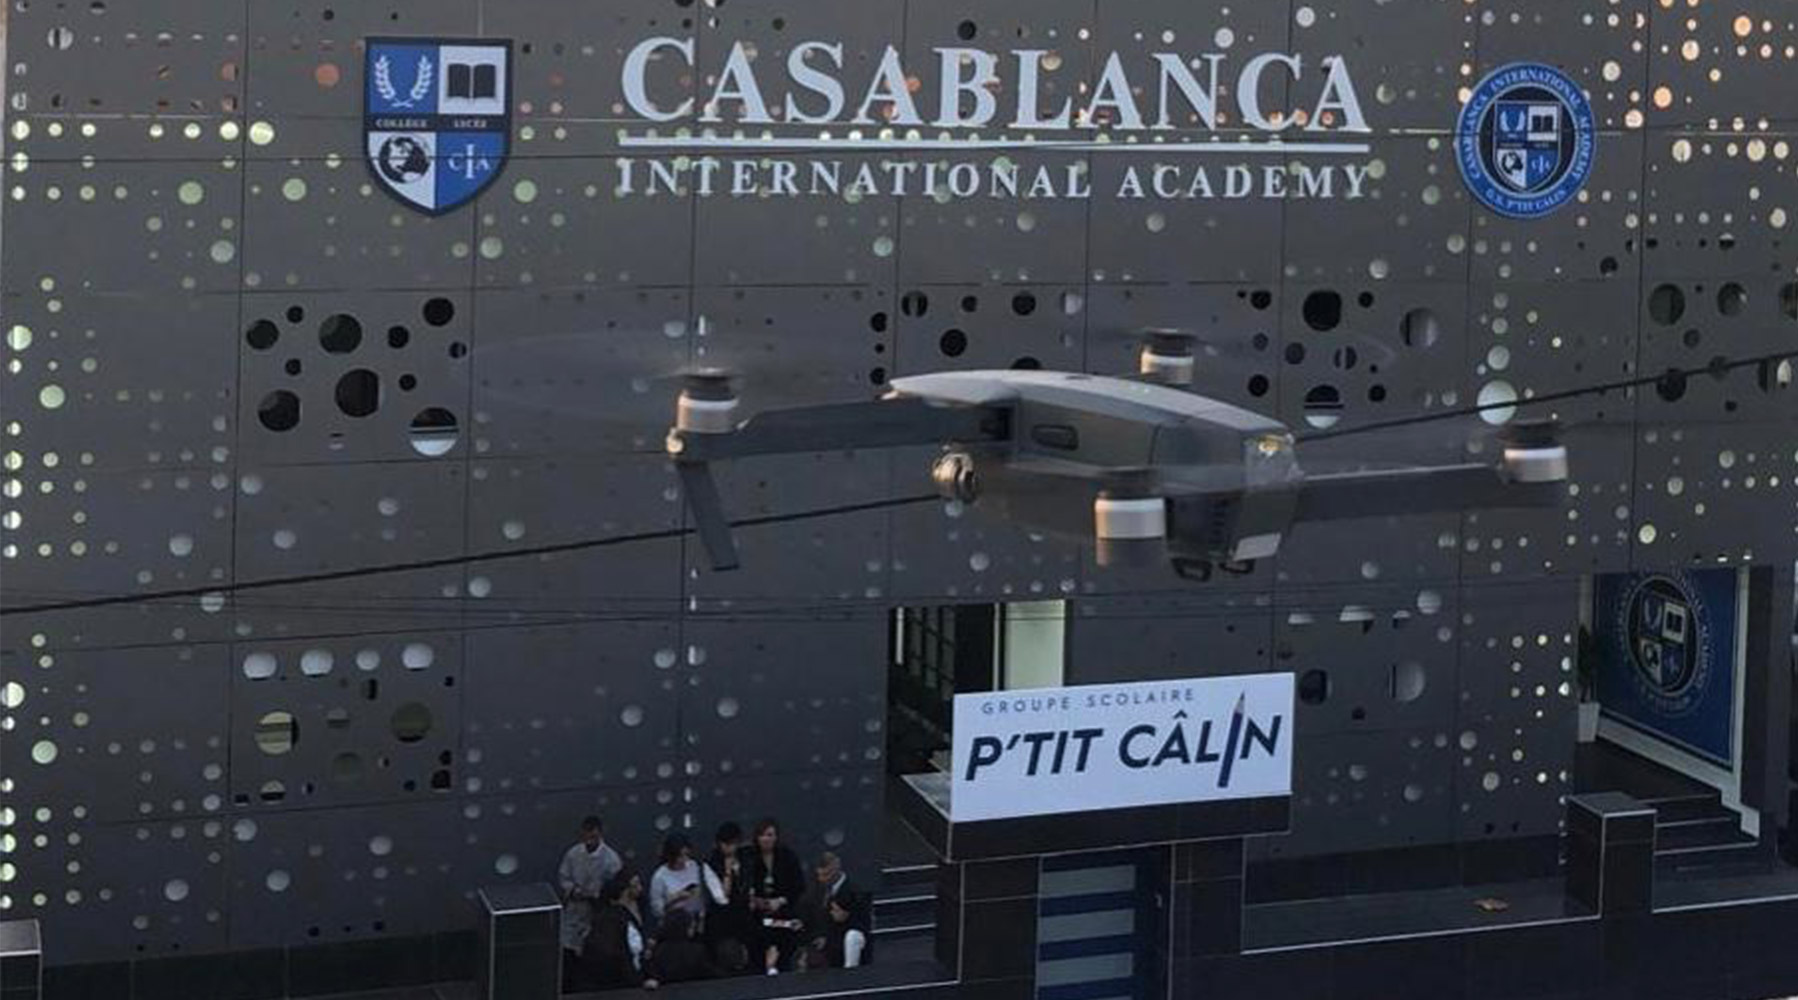 Casablanca International Academy